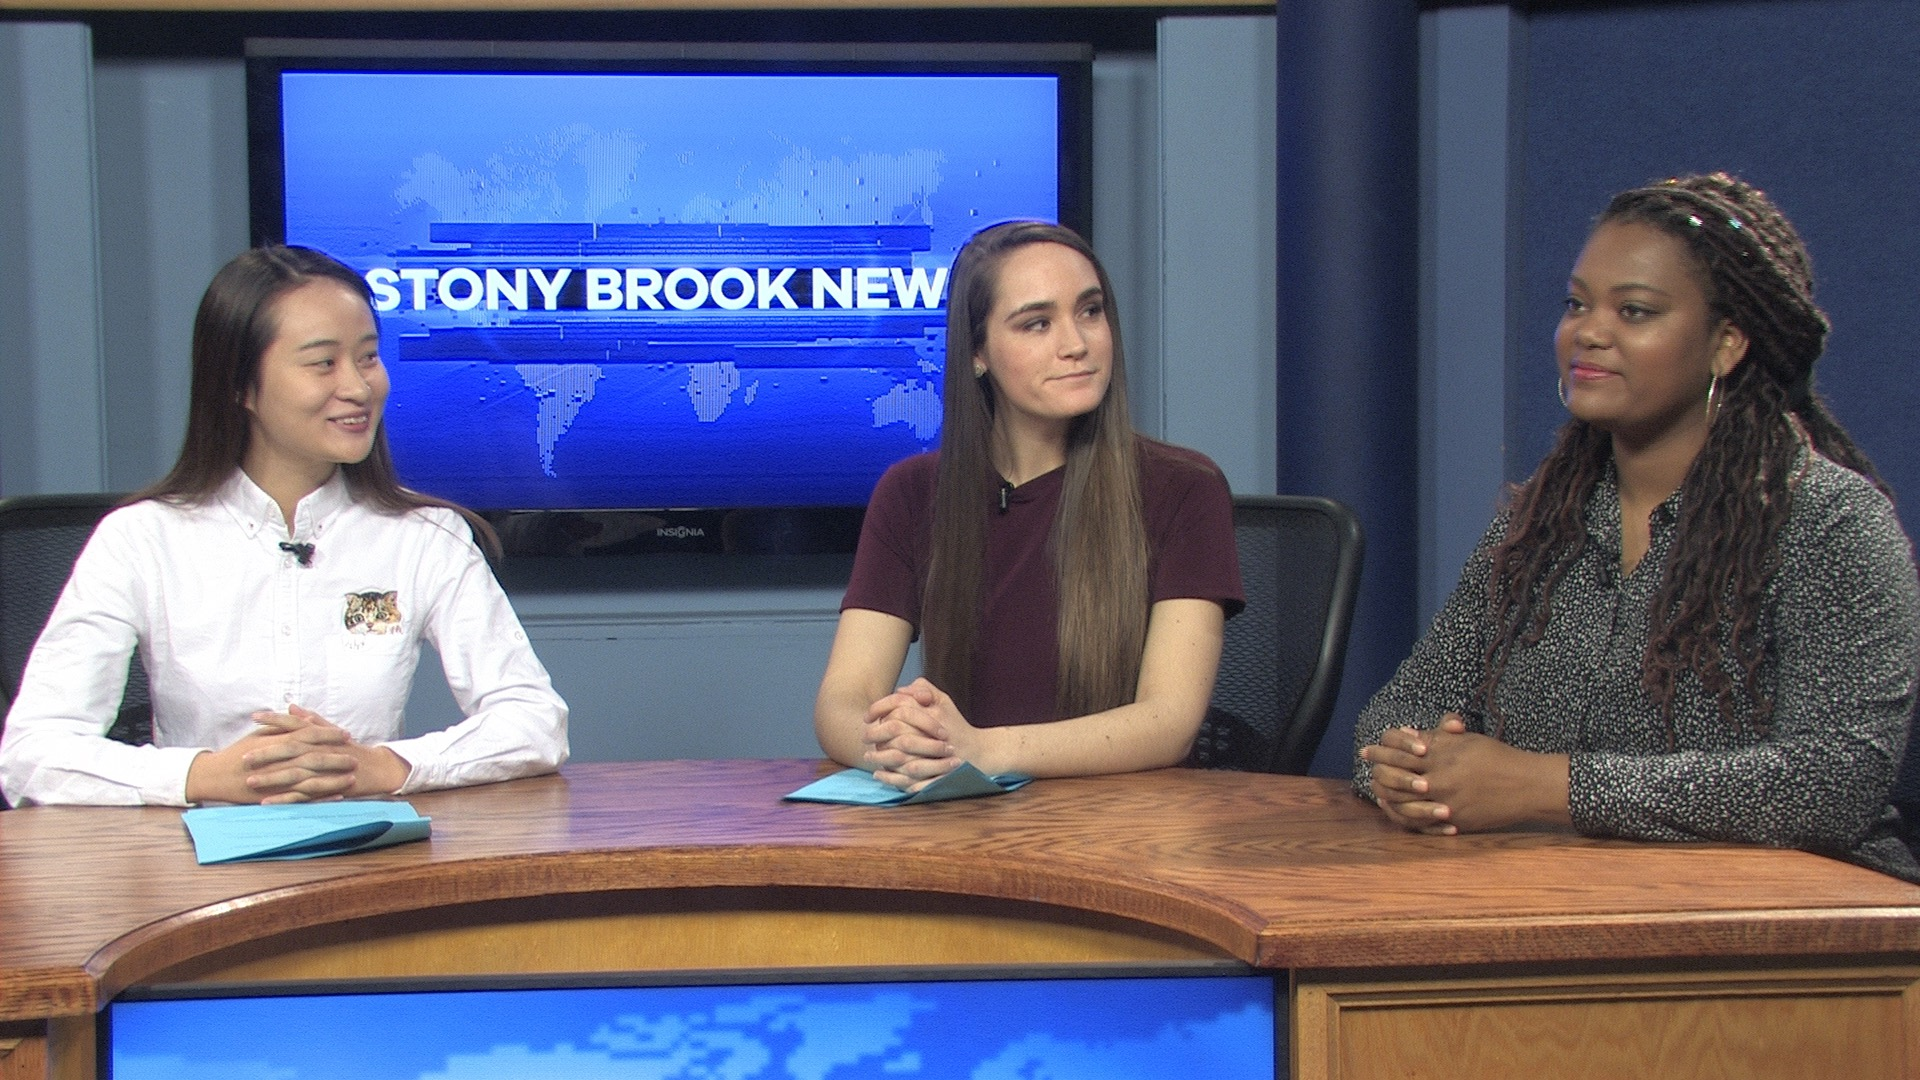 Stony Brook News – April 23, 2018